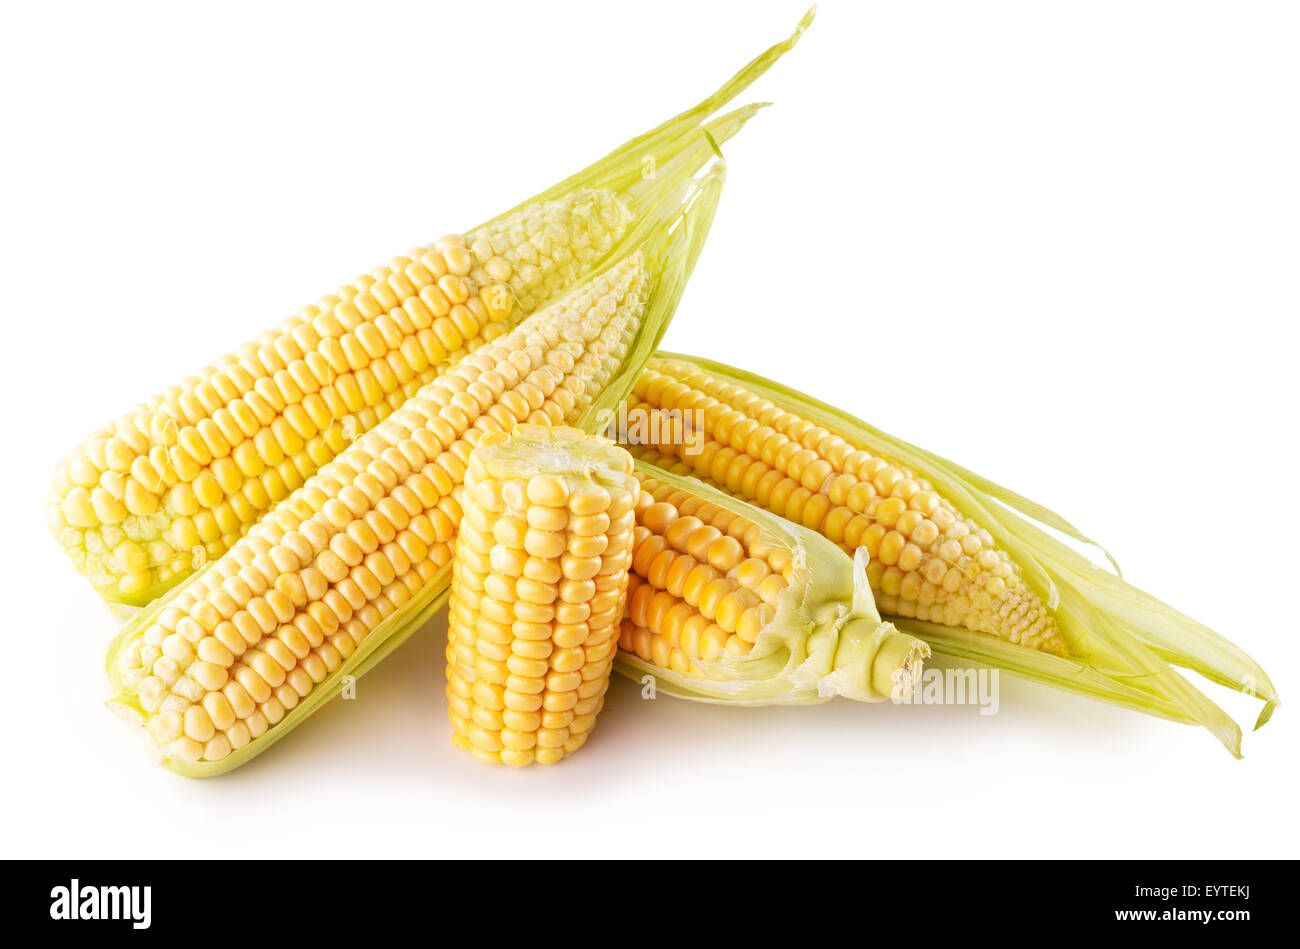 corn ears isolated on the white background. - Stock Image